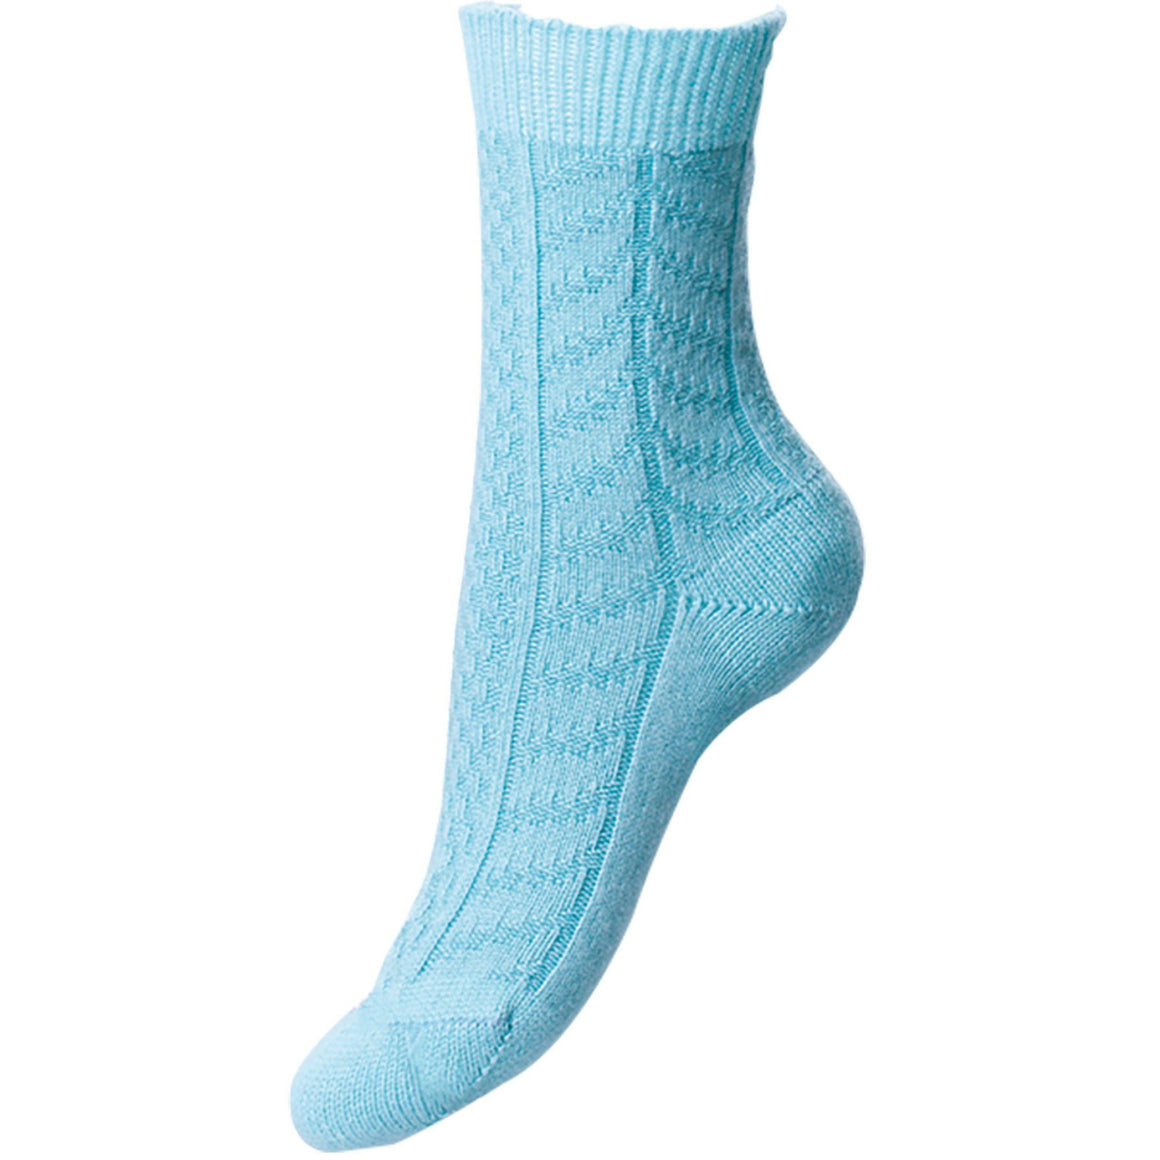 Aqua Blue Ladies Cashmere Socks | Ankle Sock | buy now at The Cashmere Choice London